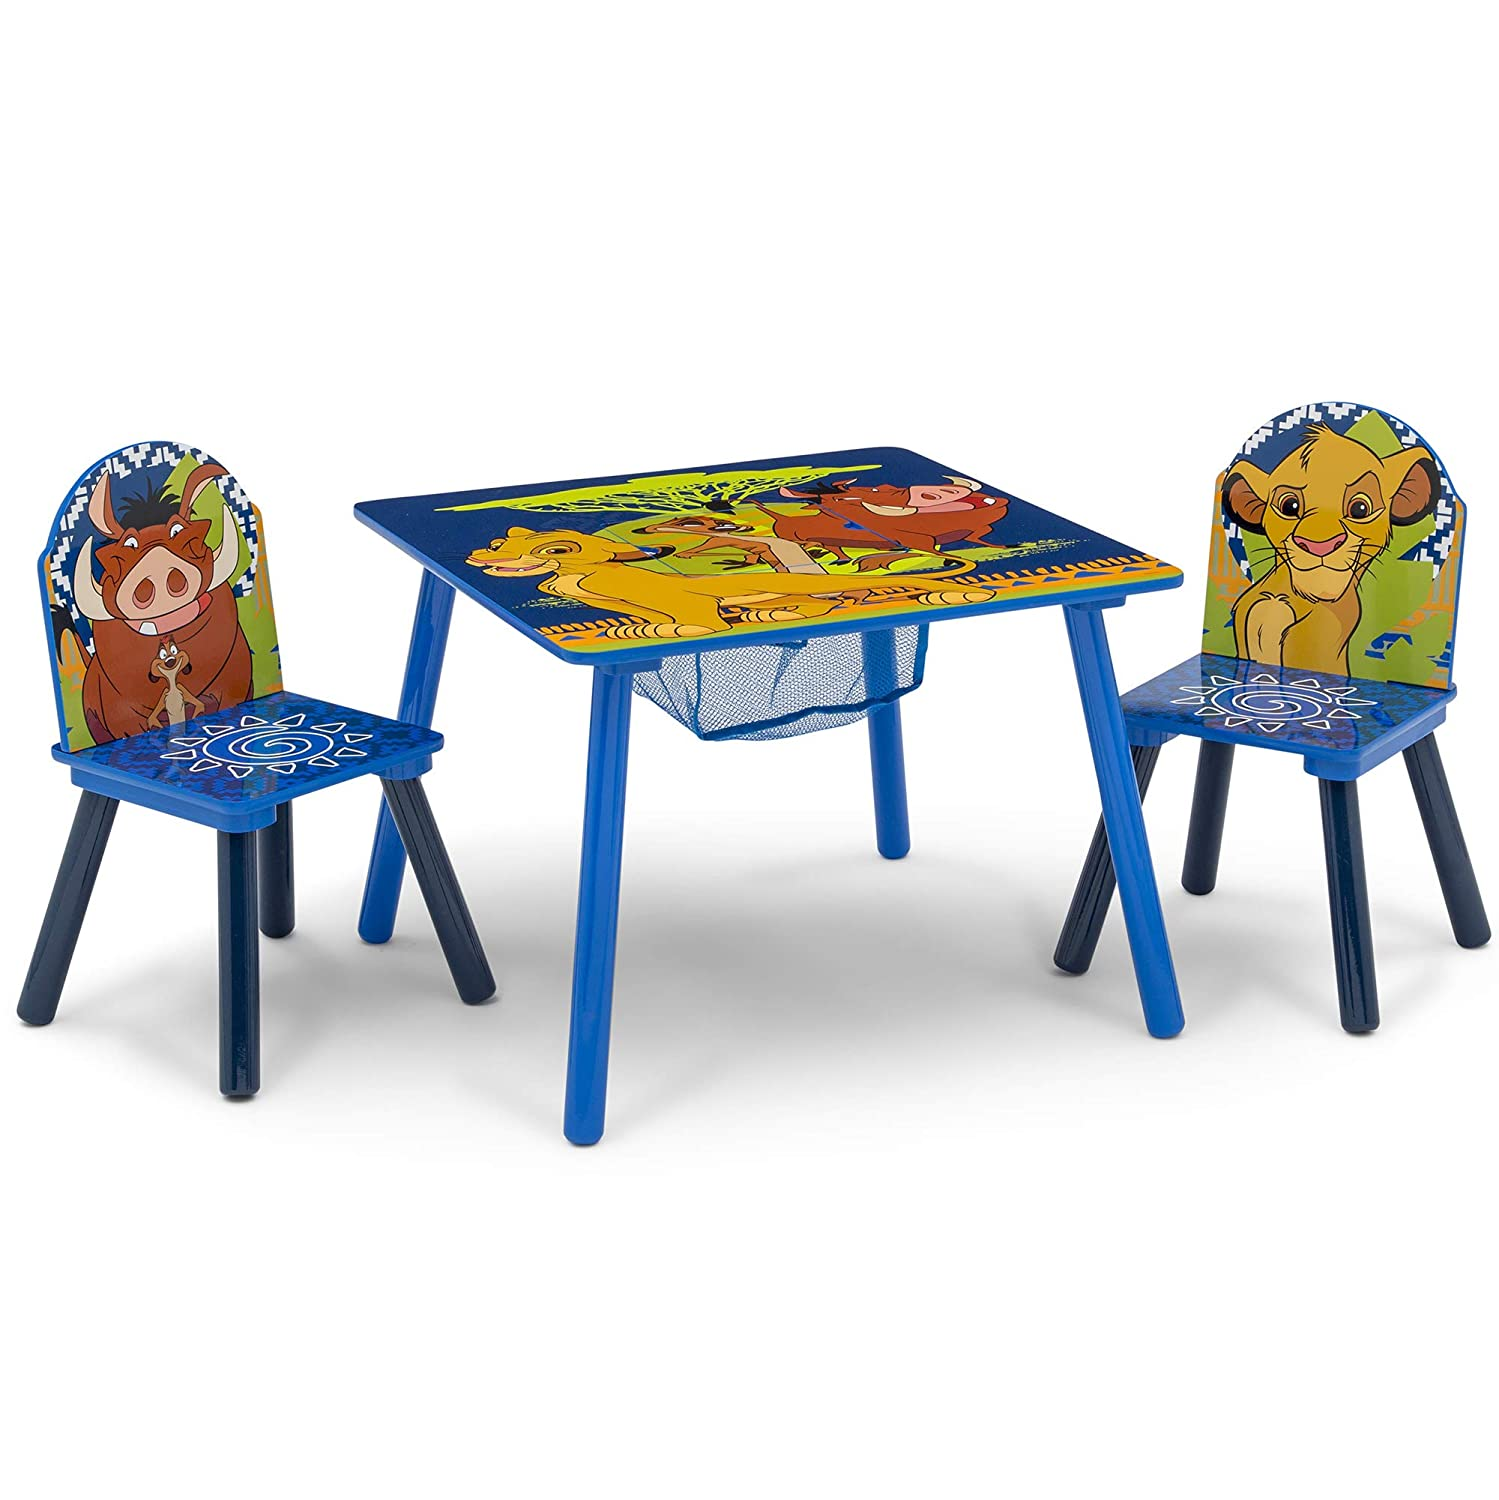 Delta Children Kids Table and Chair Set With Storage (2 Chairs Included) - Ideal for Arts & Crafts, Snack Time, Homeschooling, Homework & More, Disney The Lion King